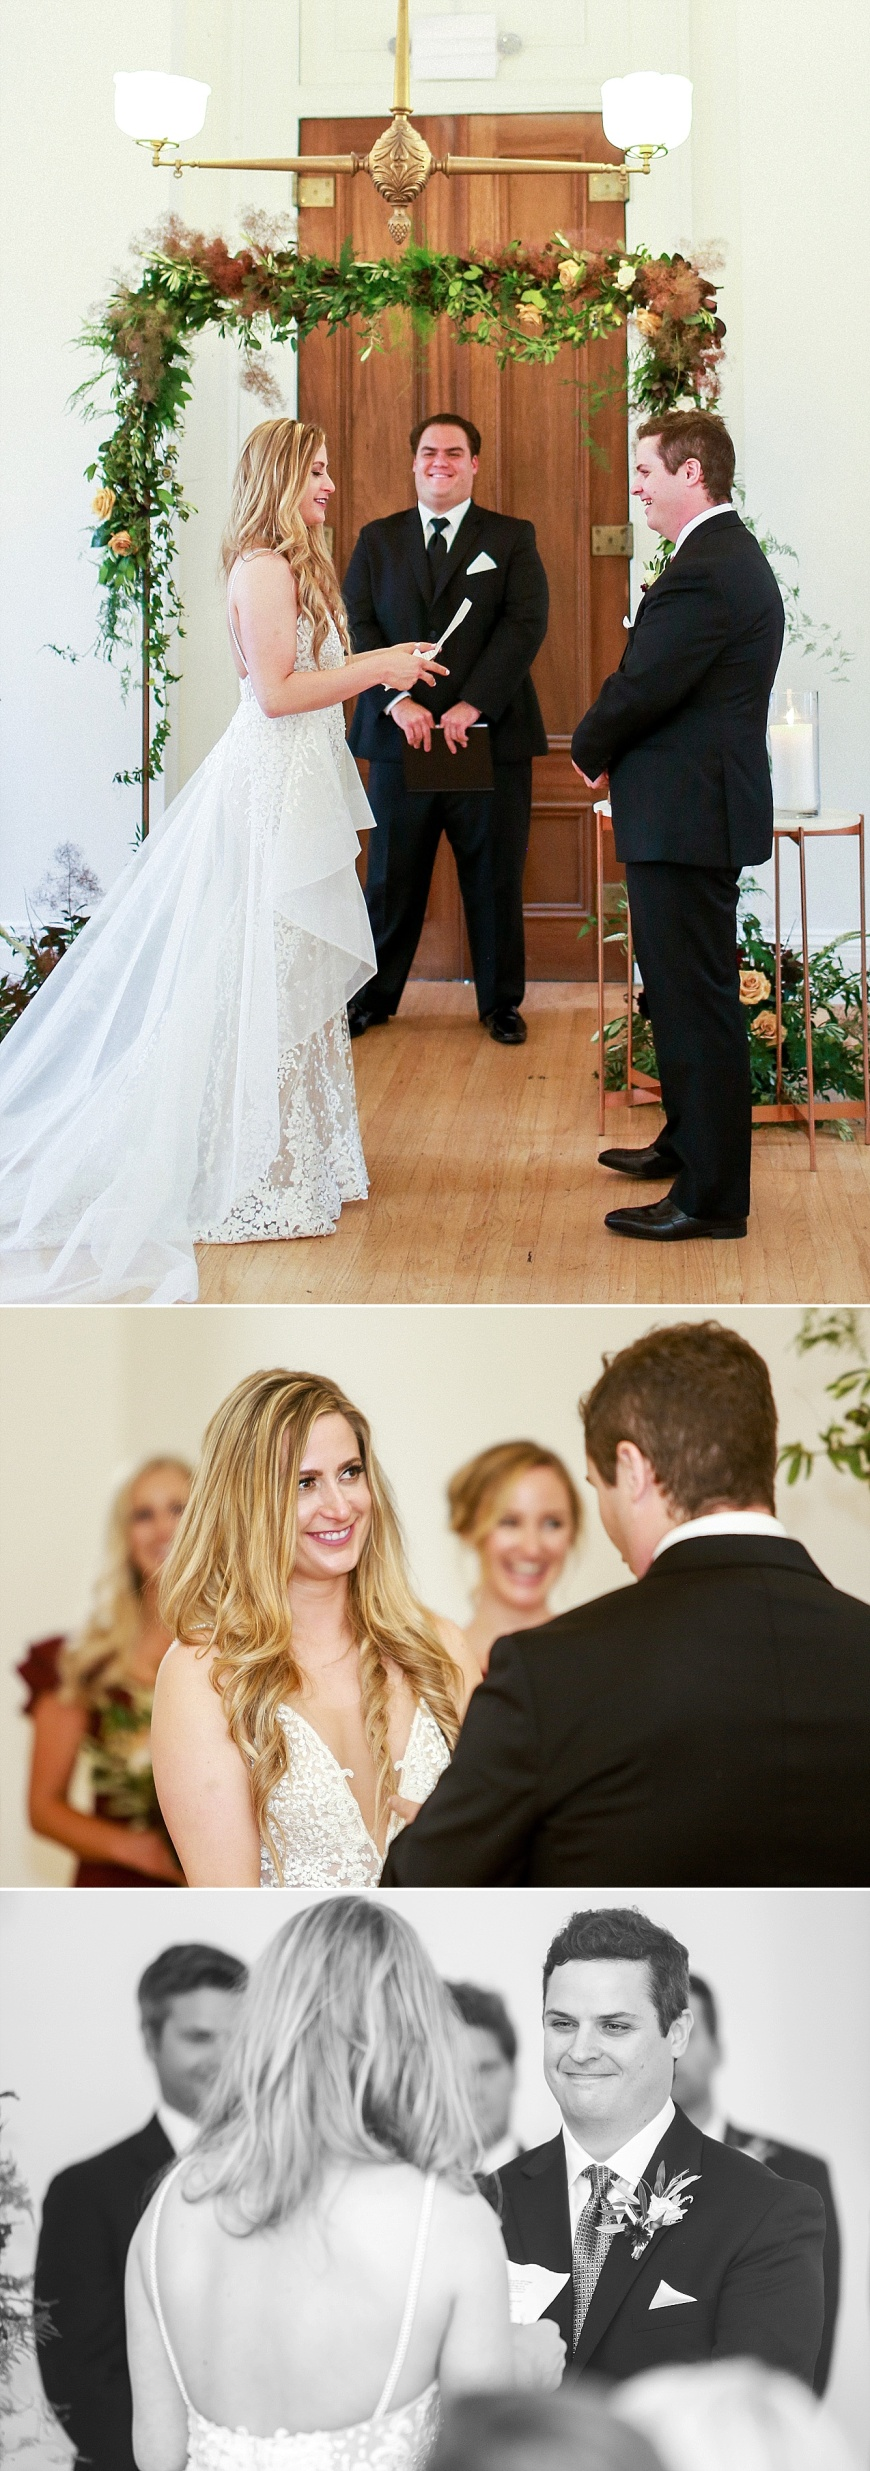 San-Francisco-Mint-SF-Wedding-Photographer_1060.jpg